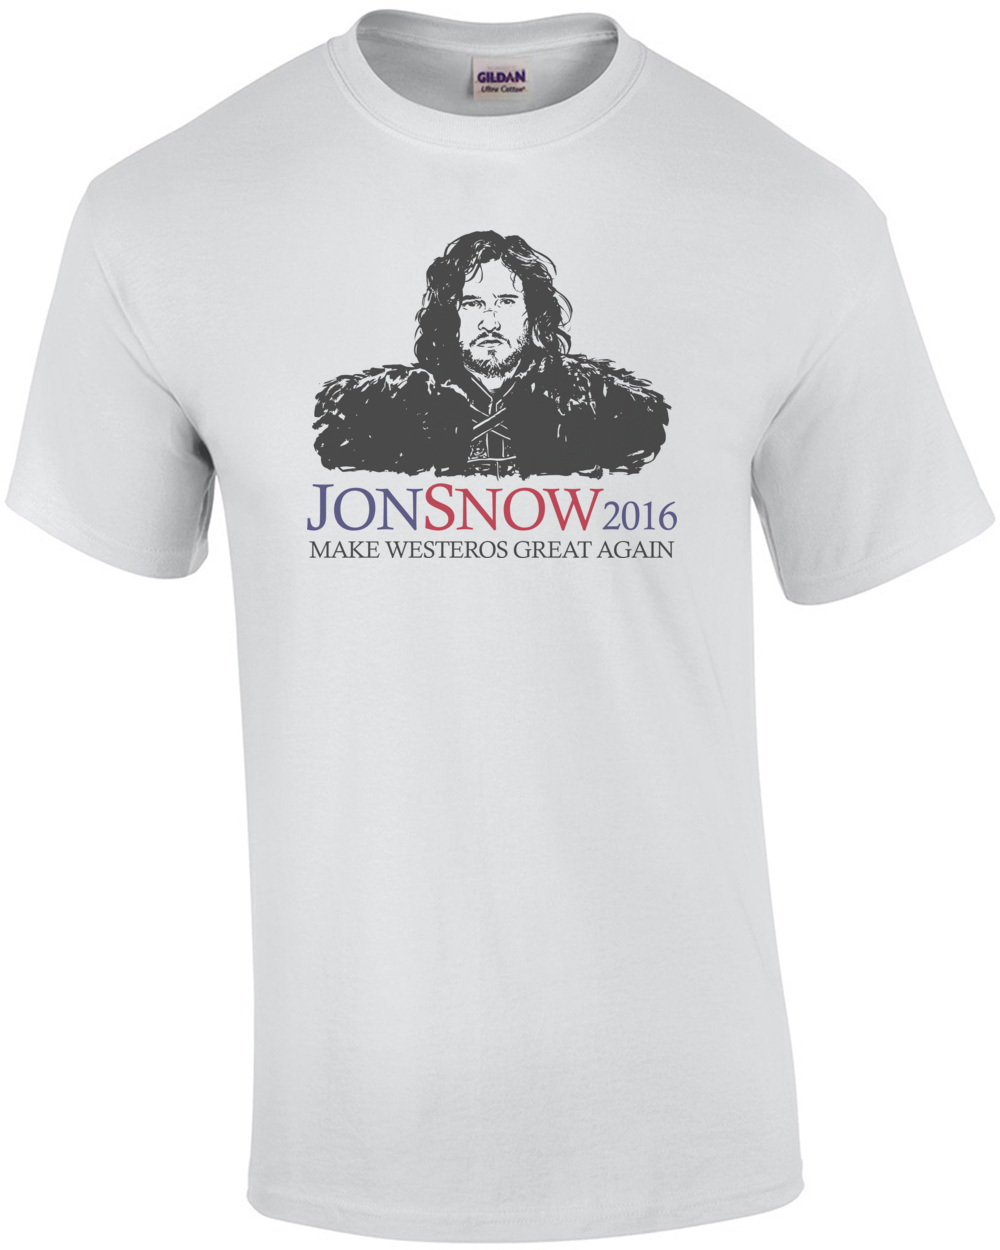 Game of thrones shirts kamos t shirt for Throne of games shirt